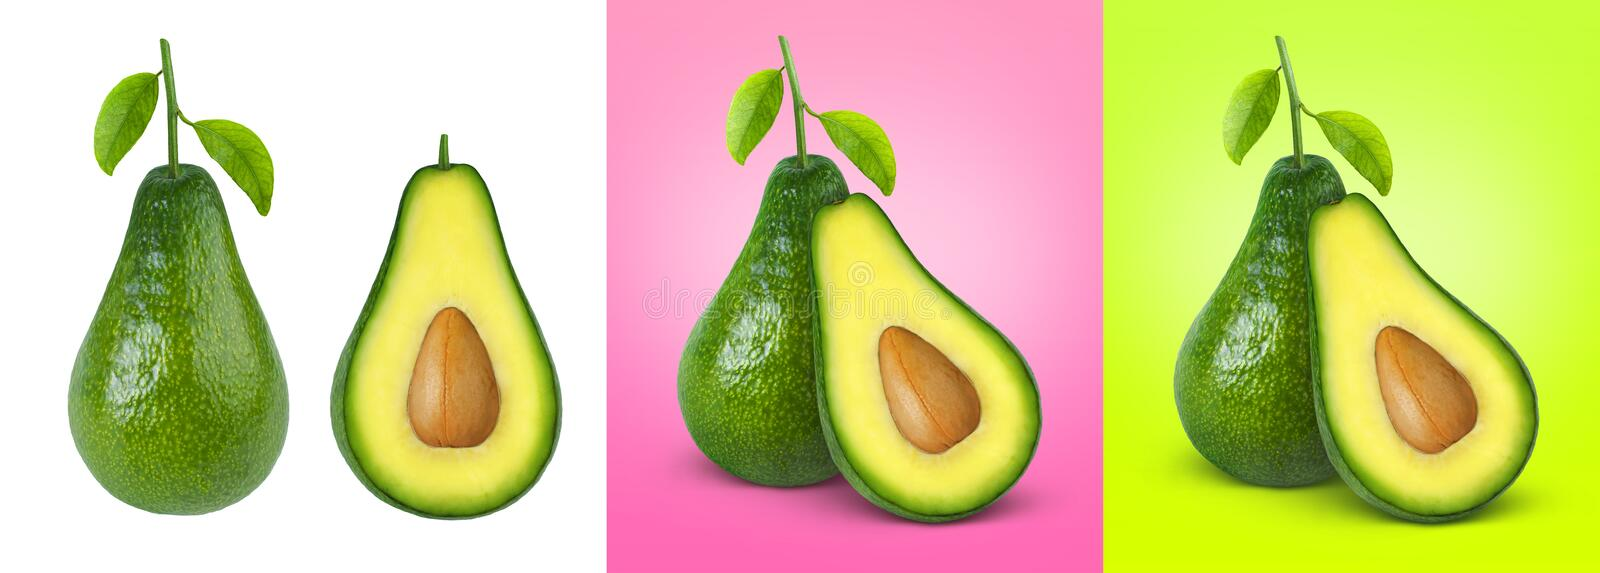 Avocado isolated on white, pink and green background royalty free stock photos